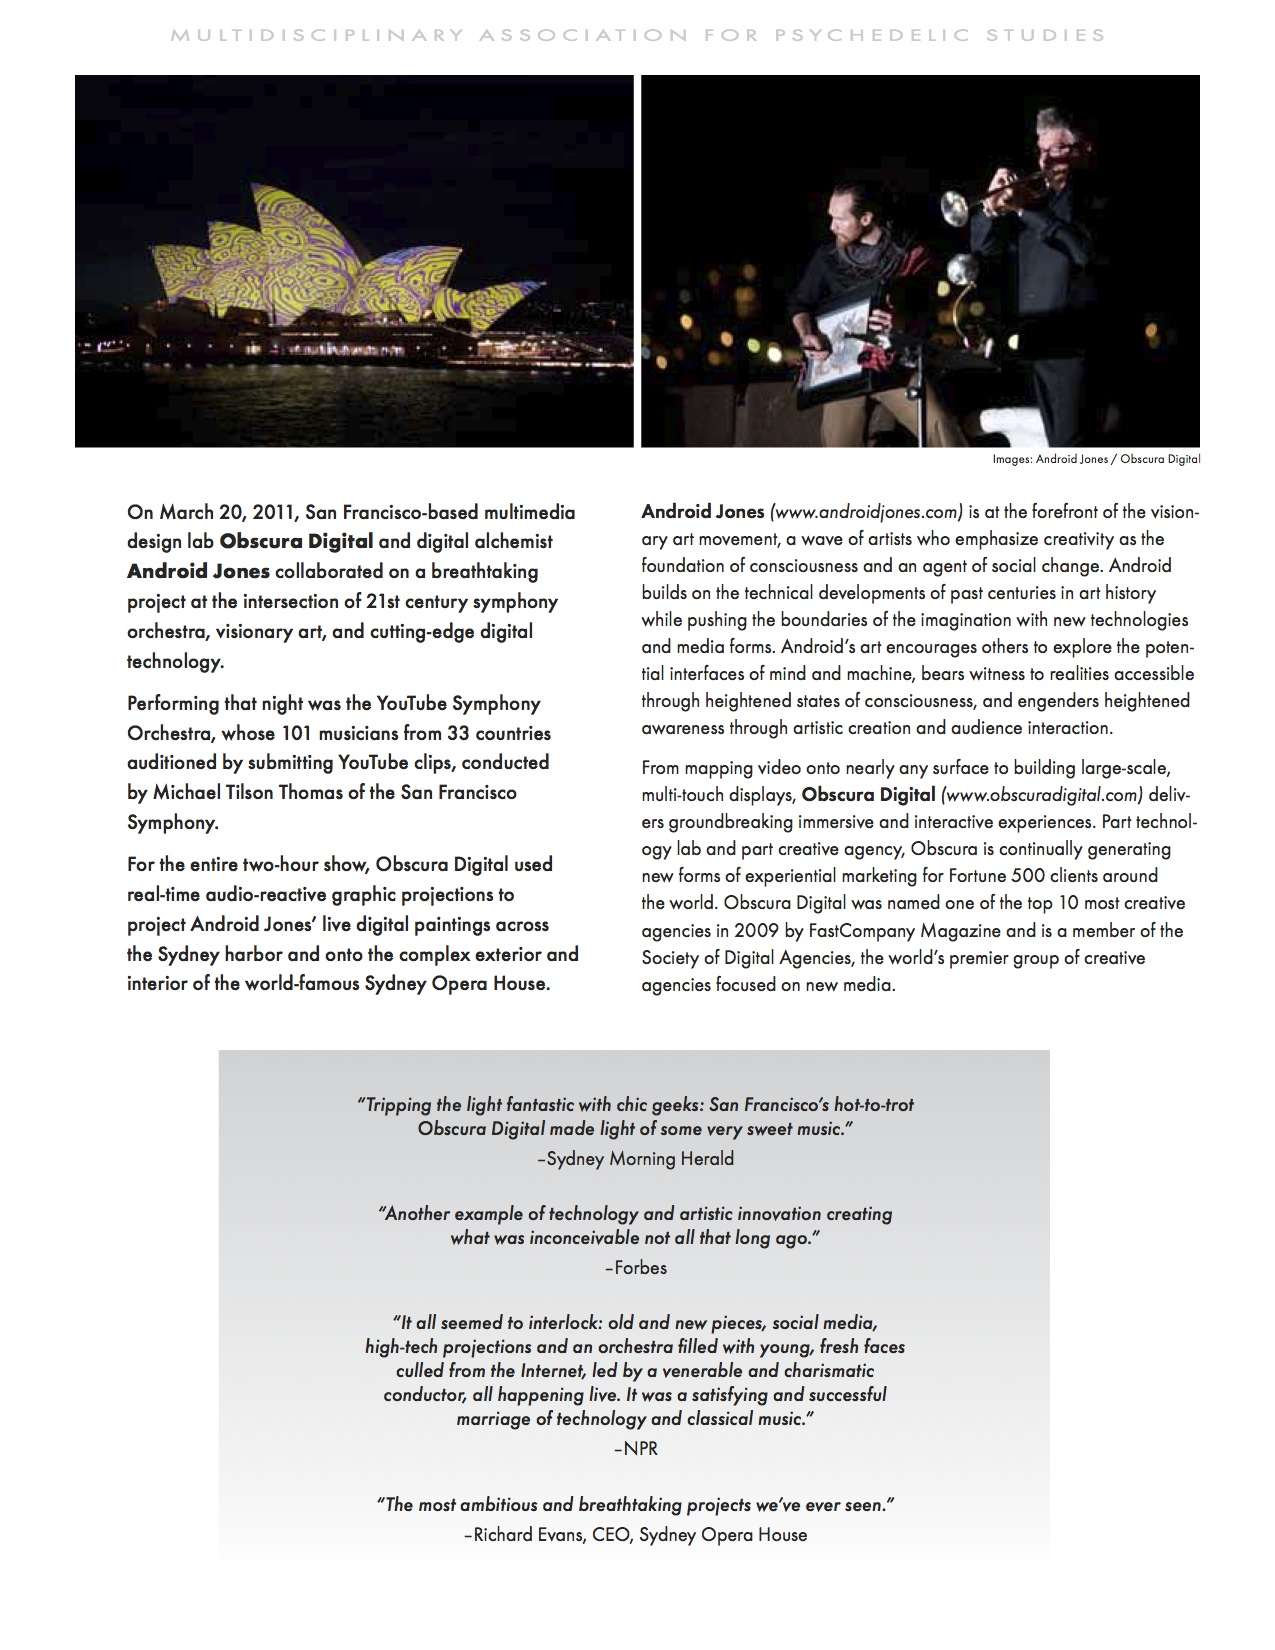 MAPS Bulletin Vol xxii No 1: Spring 2012 - Inside Front Cover Image - Psychedelic Art - 2011 Android Jones / Obscura Digital / YouTube Symphony Orchestra / Sydney Opera House Collaboration by Android Jones / Obscura Digital / YouTube Symphony Orchestra